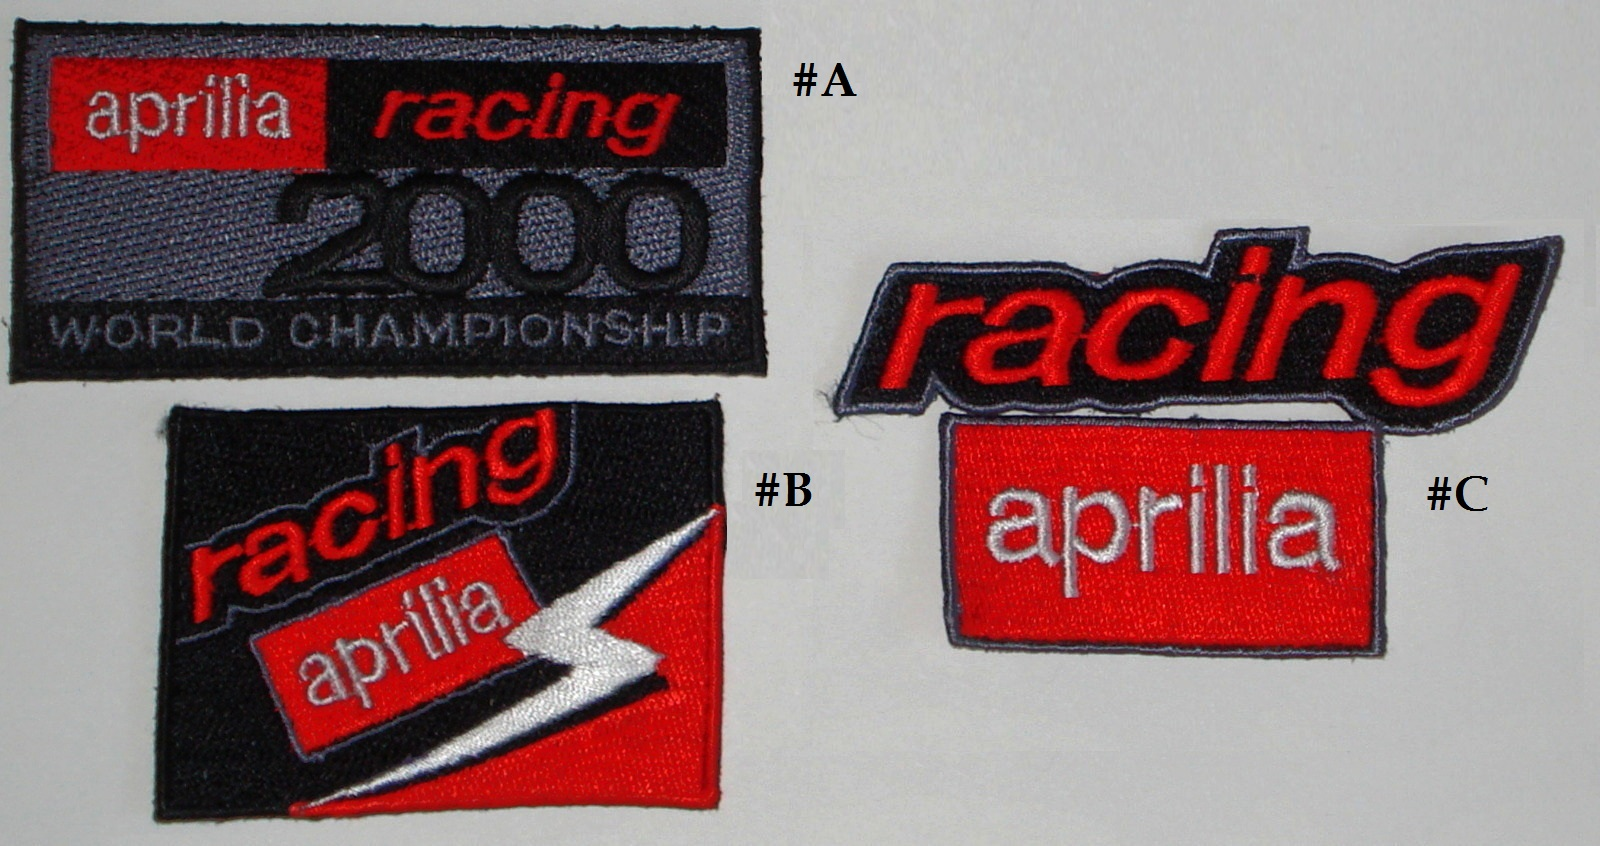 3 Aprilia Racing patches